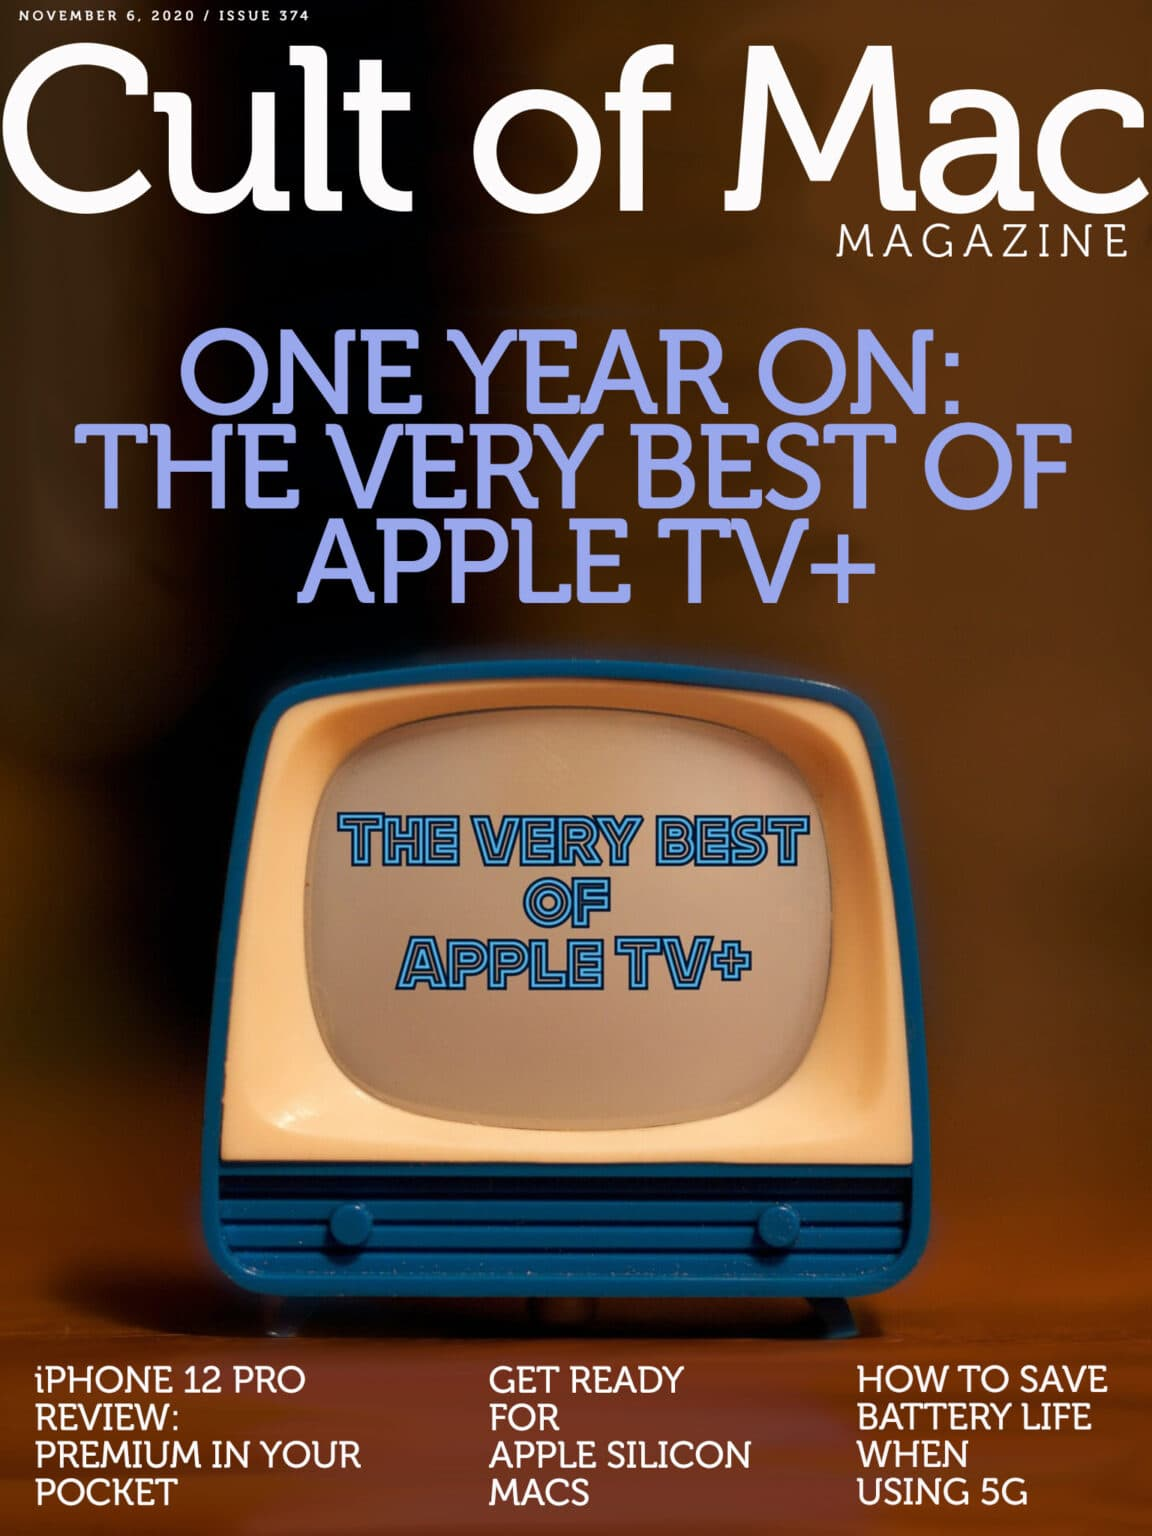 Best Apple TV+ shows: Prep your peepers for some stellar Apple TV+ shows.